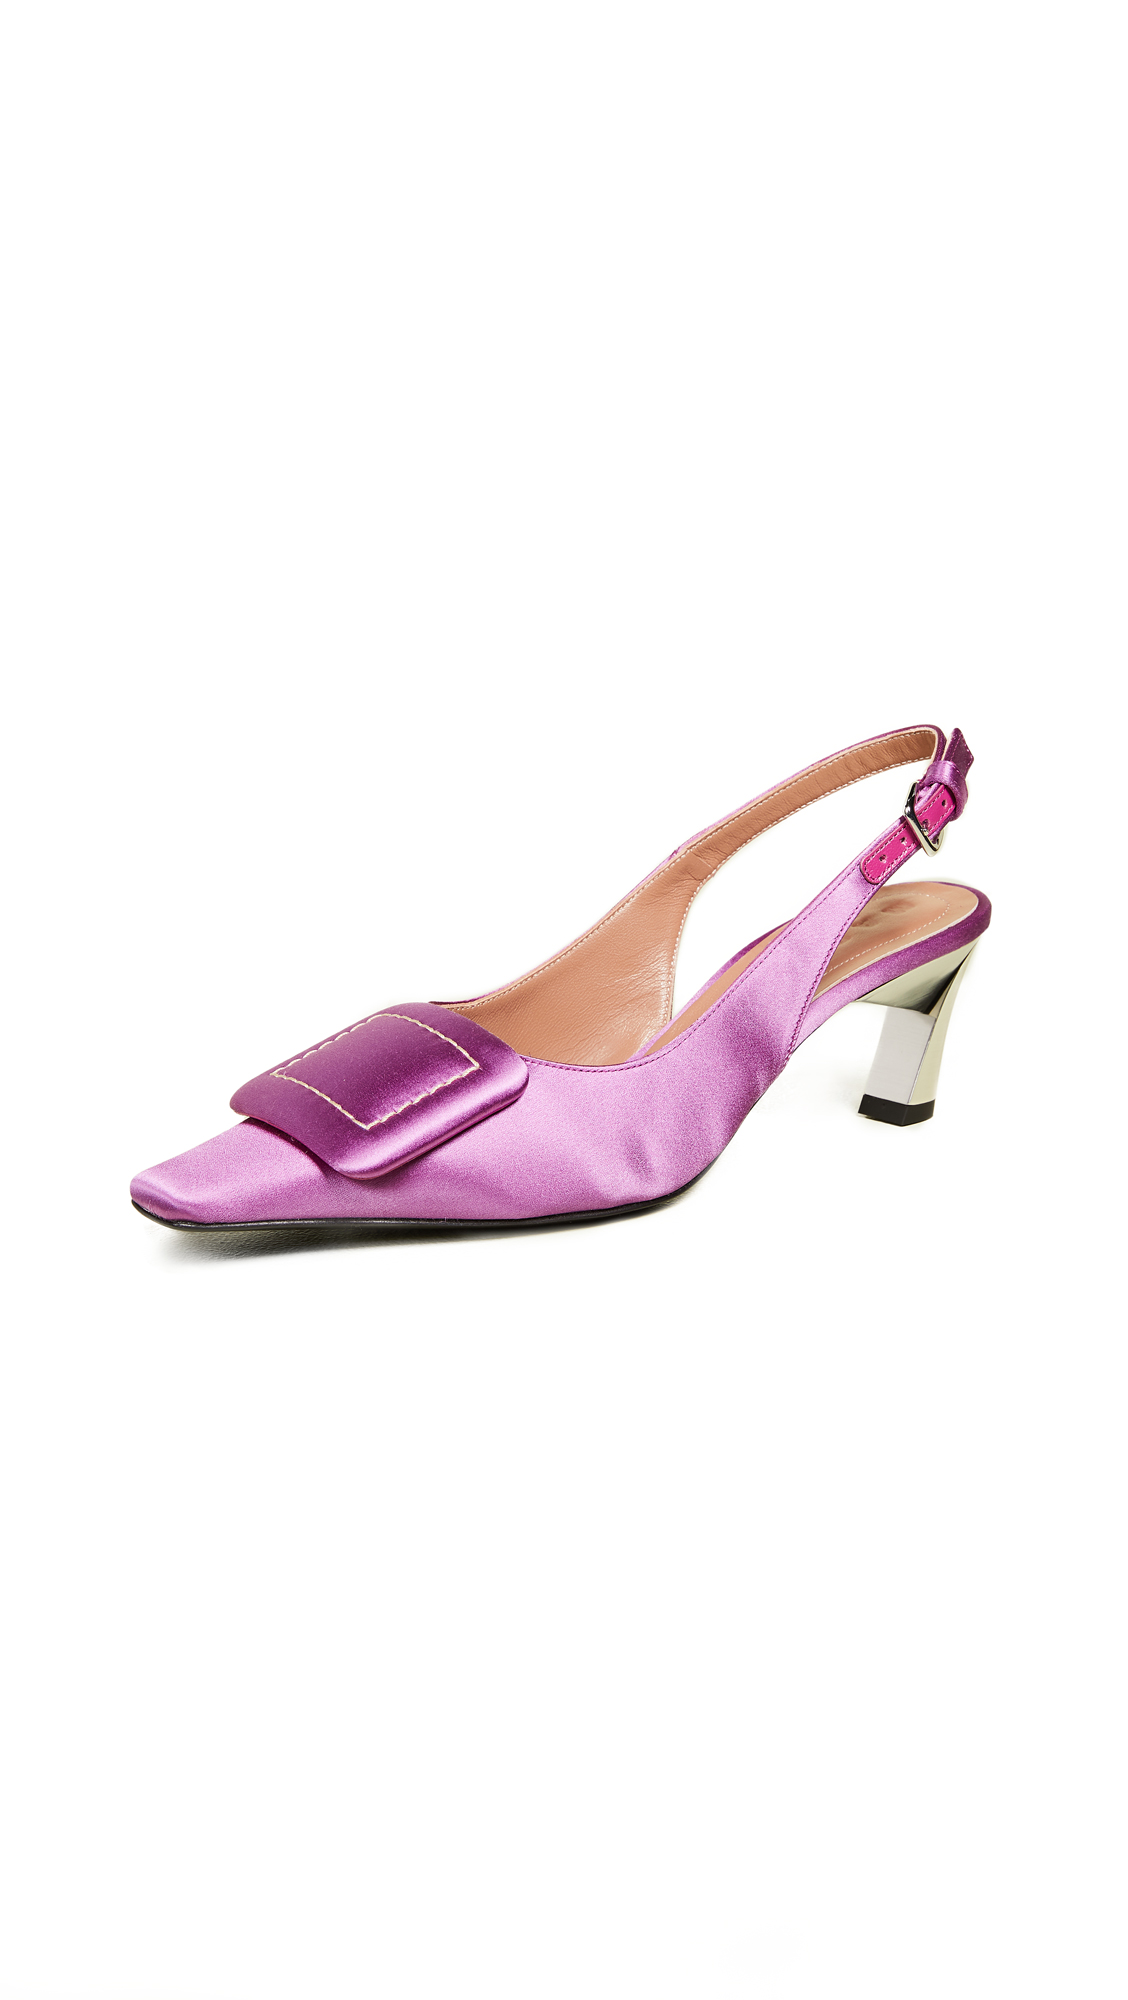 Marni Sling Back Pumps - Lipstick